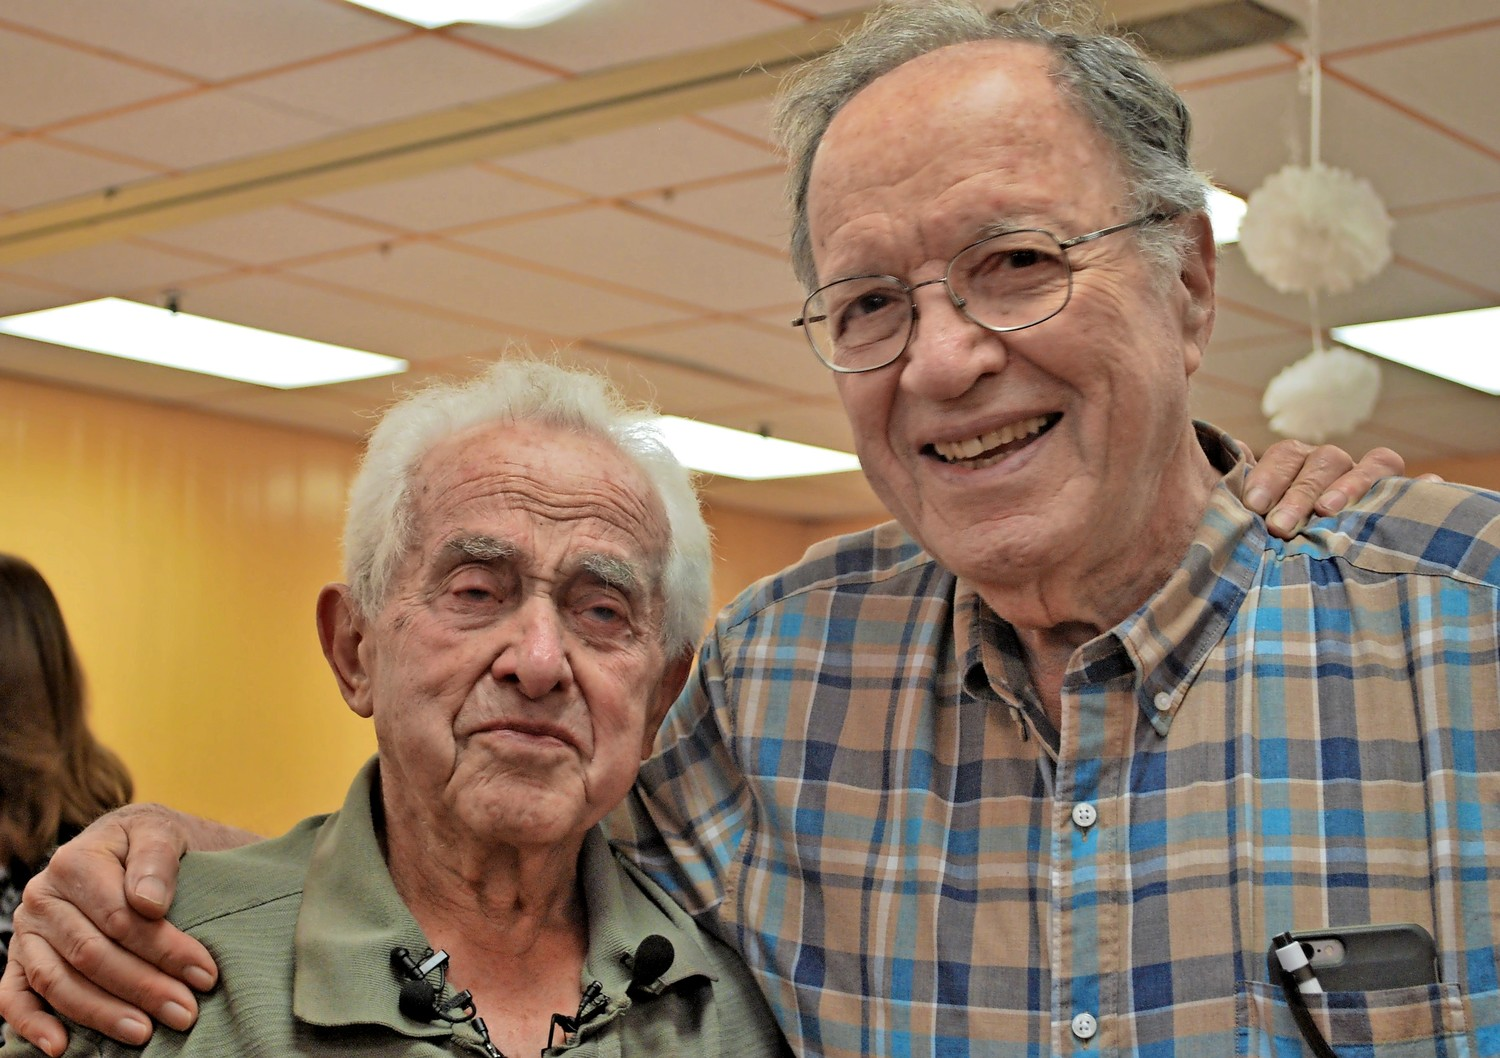 Shoah survivor Bernard Igielski with Dr. Joseph Kohn, a cousin of Dr. Berthold Epstein, the man who saved Igielski's life four times at Auschwitz.